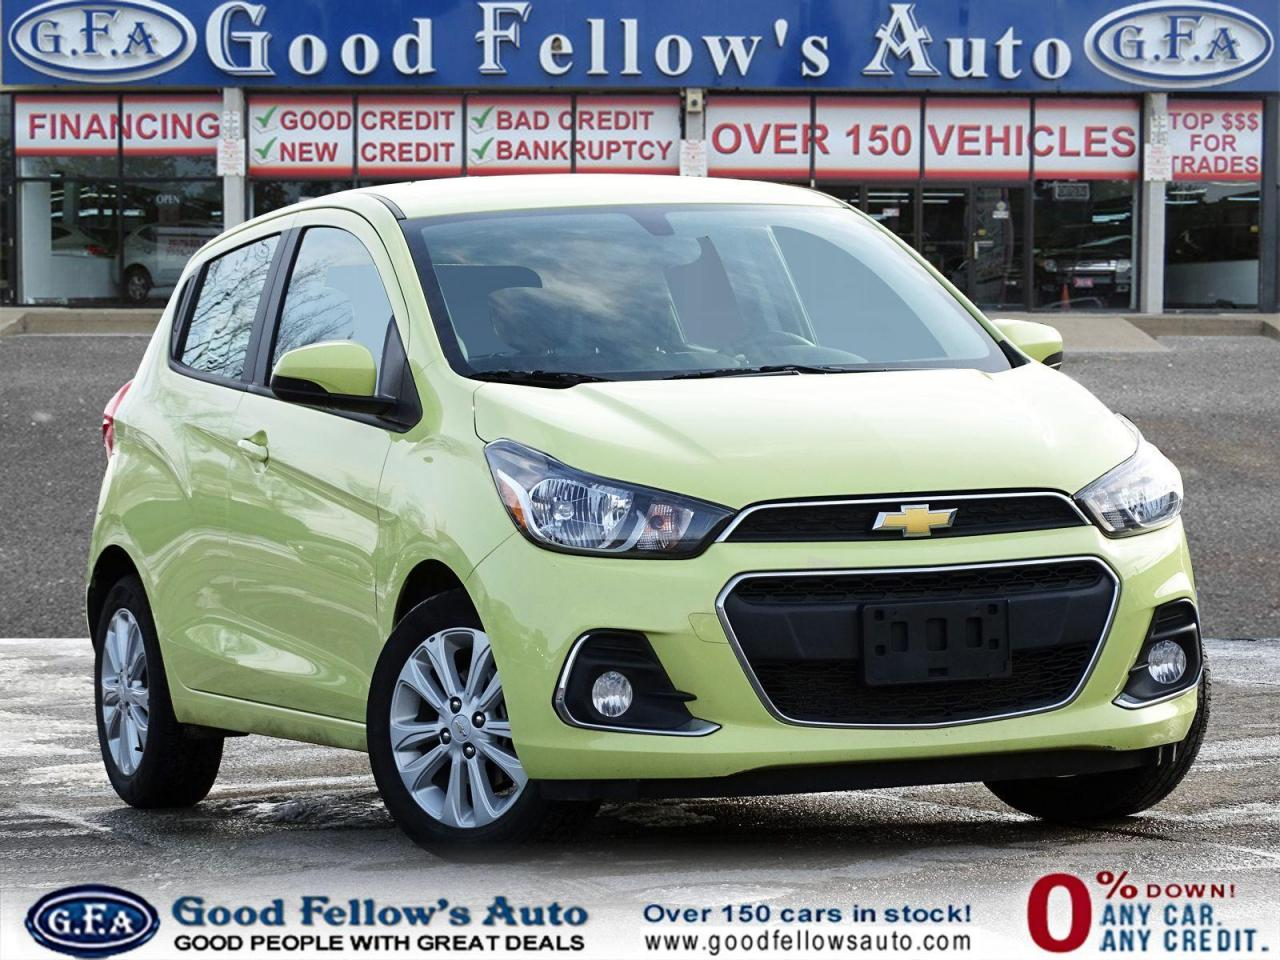 used 2017 Chevrolet Spark car, priced at $10,400